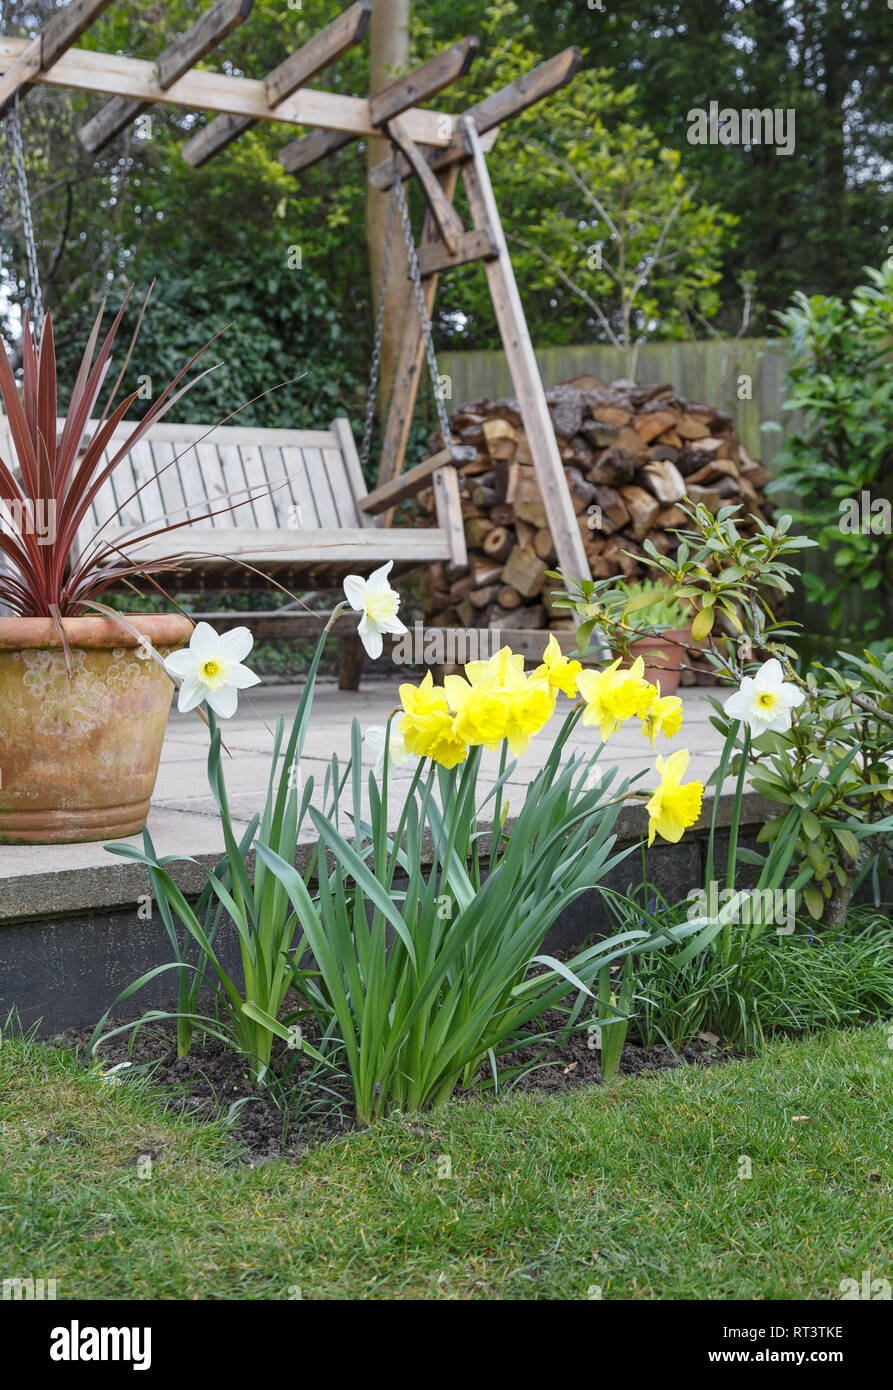 Yellow and white daffodils in a garden border in front of a patio with a swing bench Stock Photo